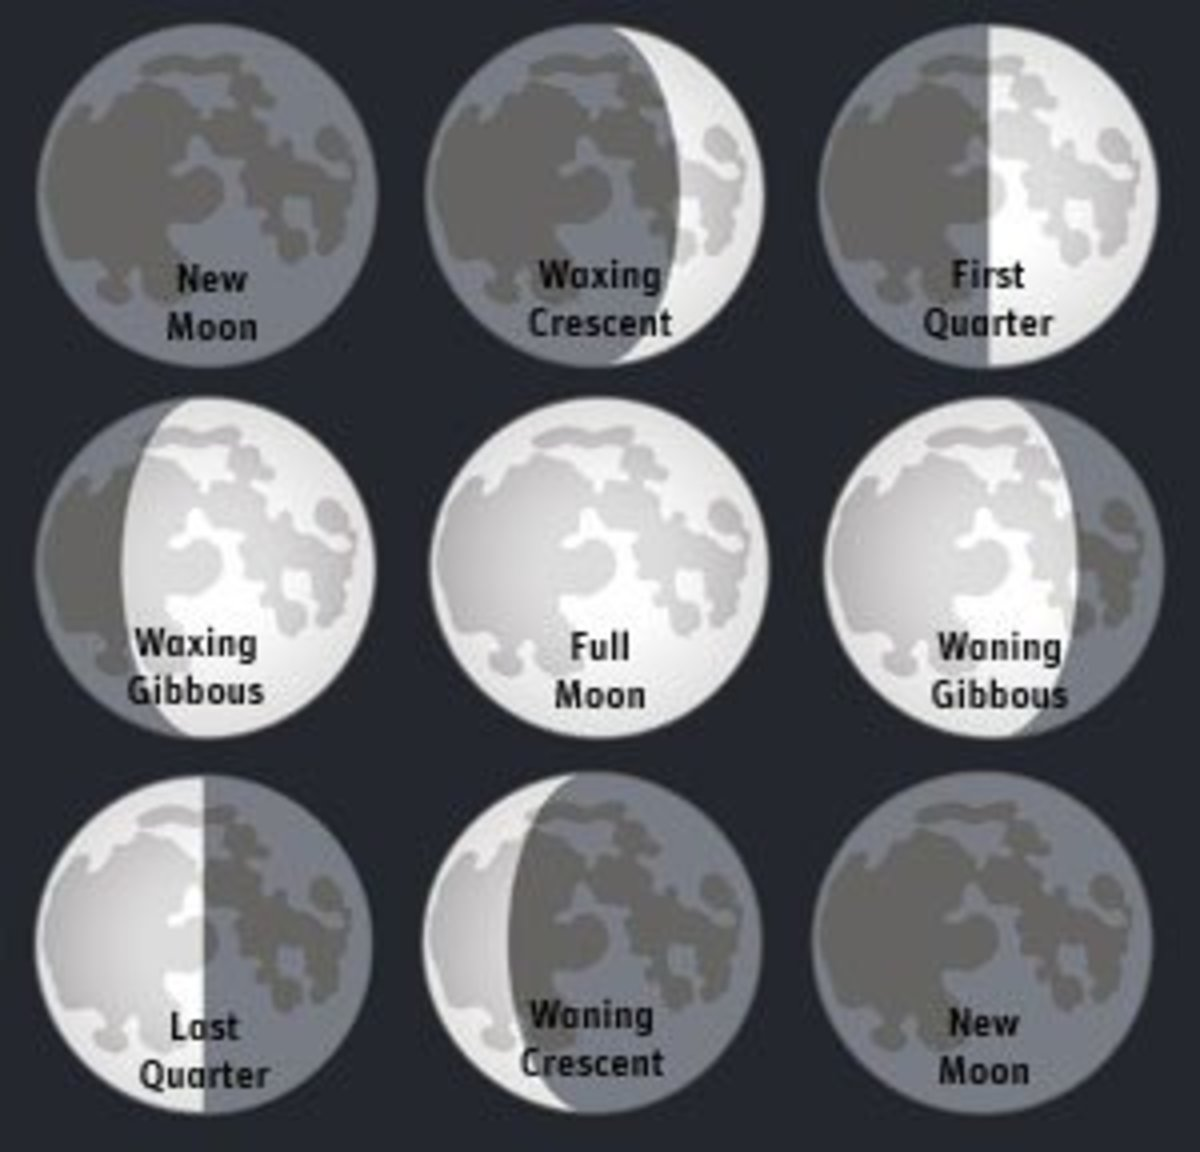 the-phases-of-the-moon-a-middle-school-science-hands-on-lesson